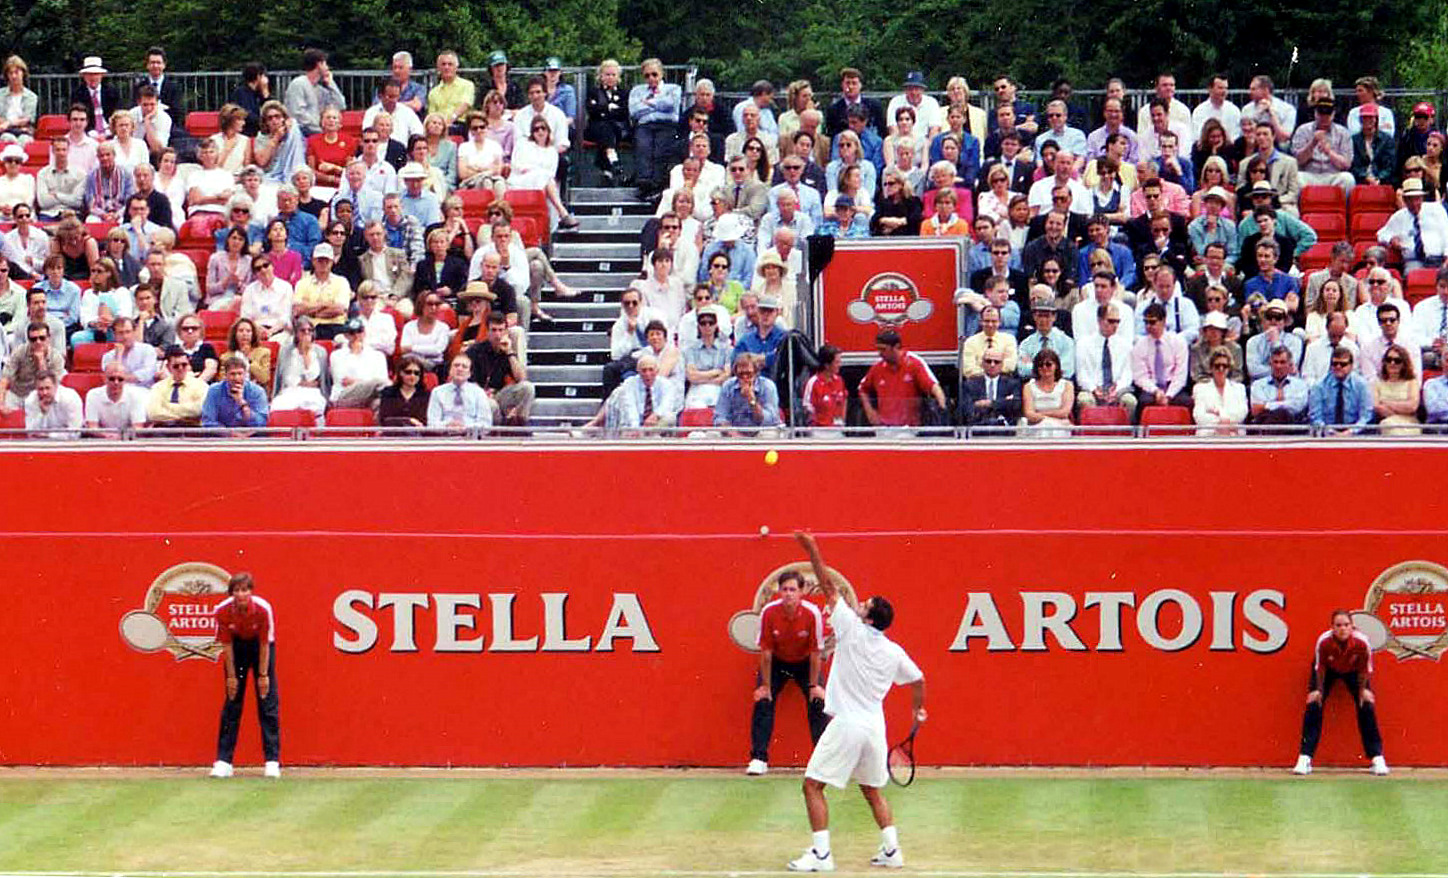 Pete Sampras Serve at the Stella, 2000